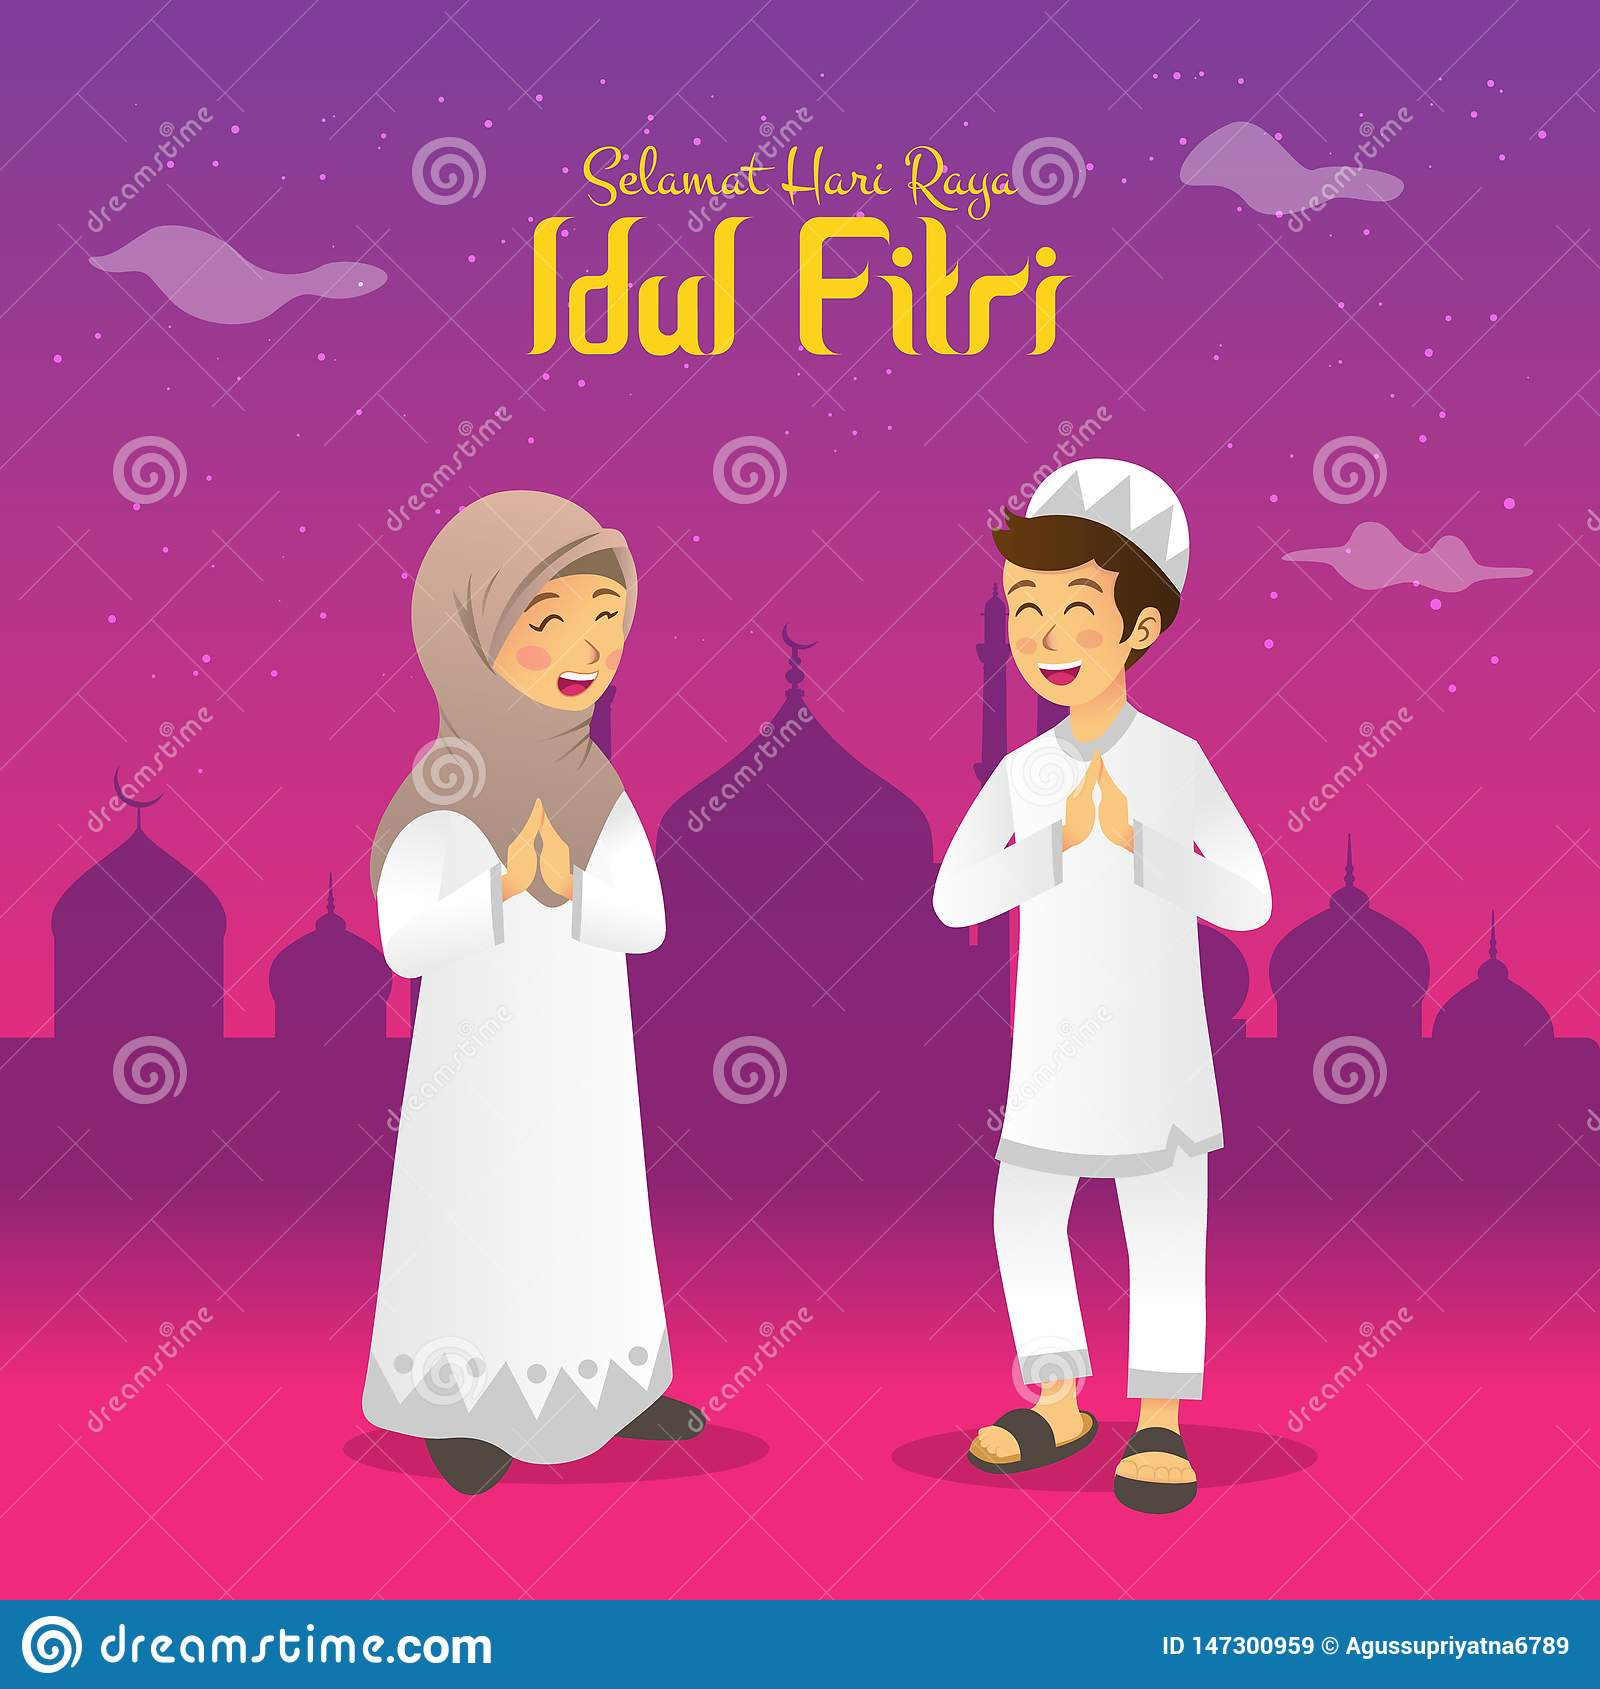 Selamat Hari Raya Idul Fitri Is Another Language Of Happy Eid Mubarak In Indonesian Cartoon Muslim Kids Celebrating Eid Al Fitr I Stock Vector Illustration Of Children Girl 147300959